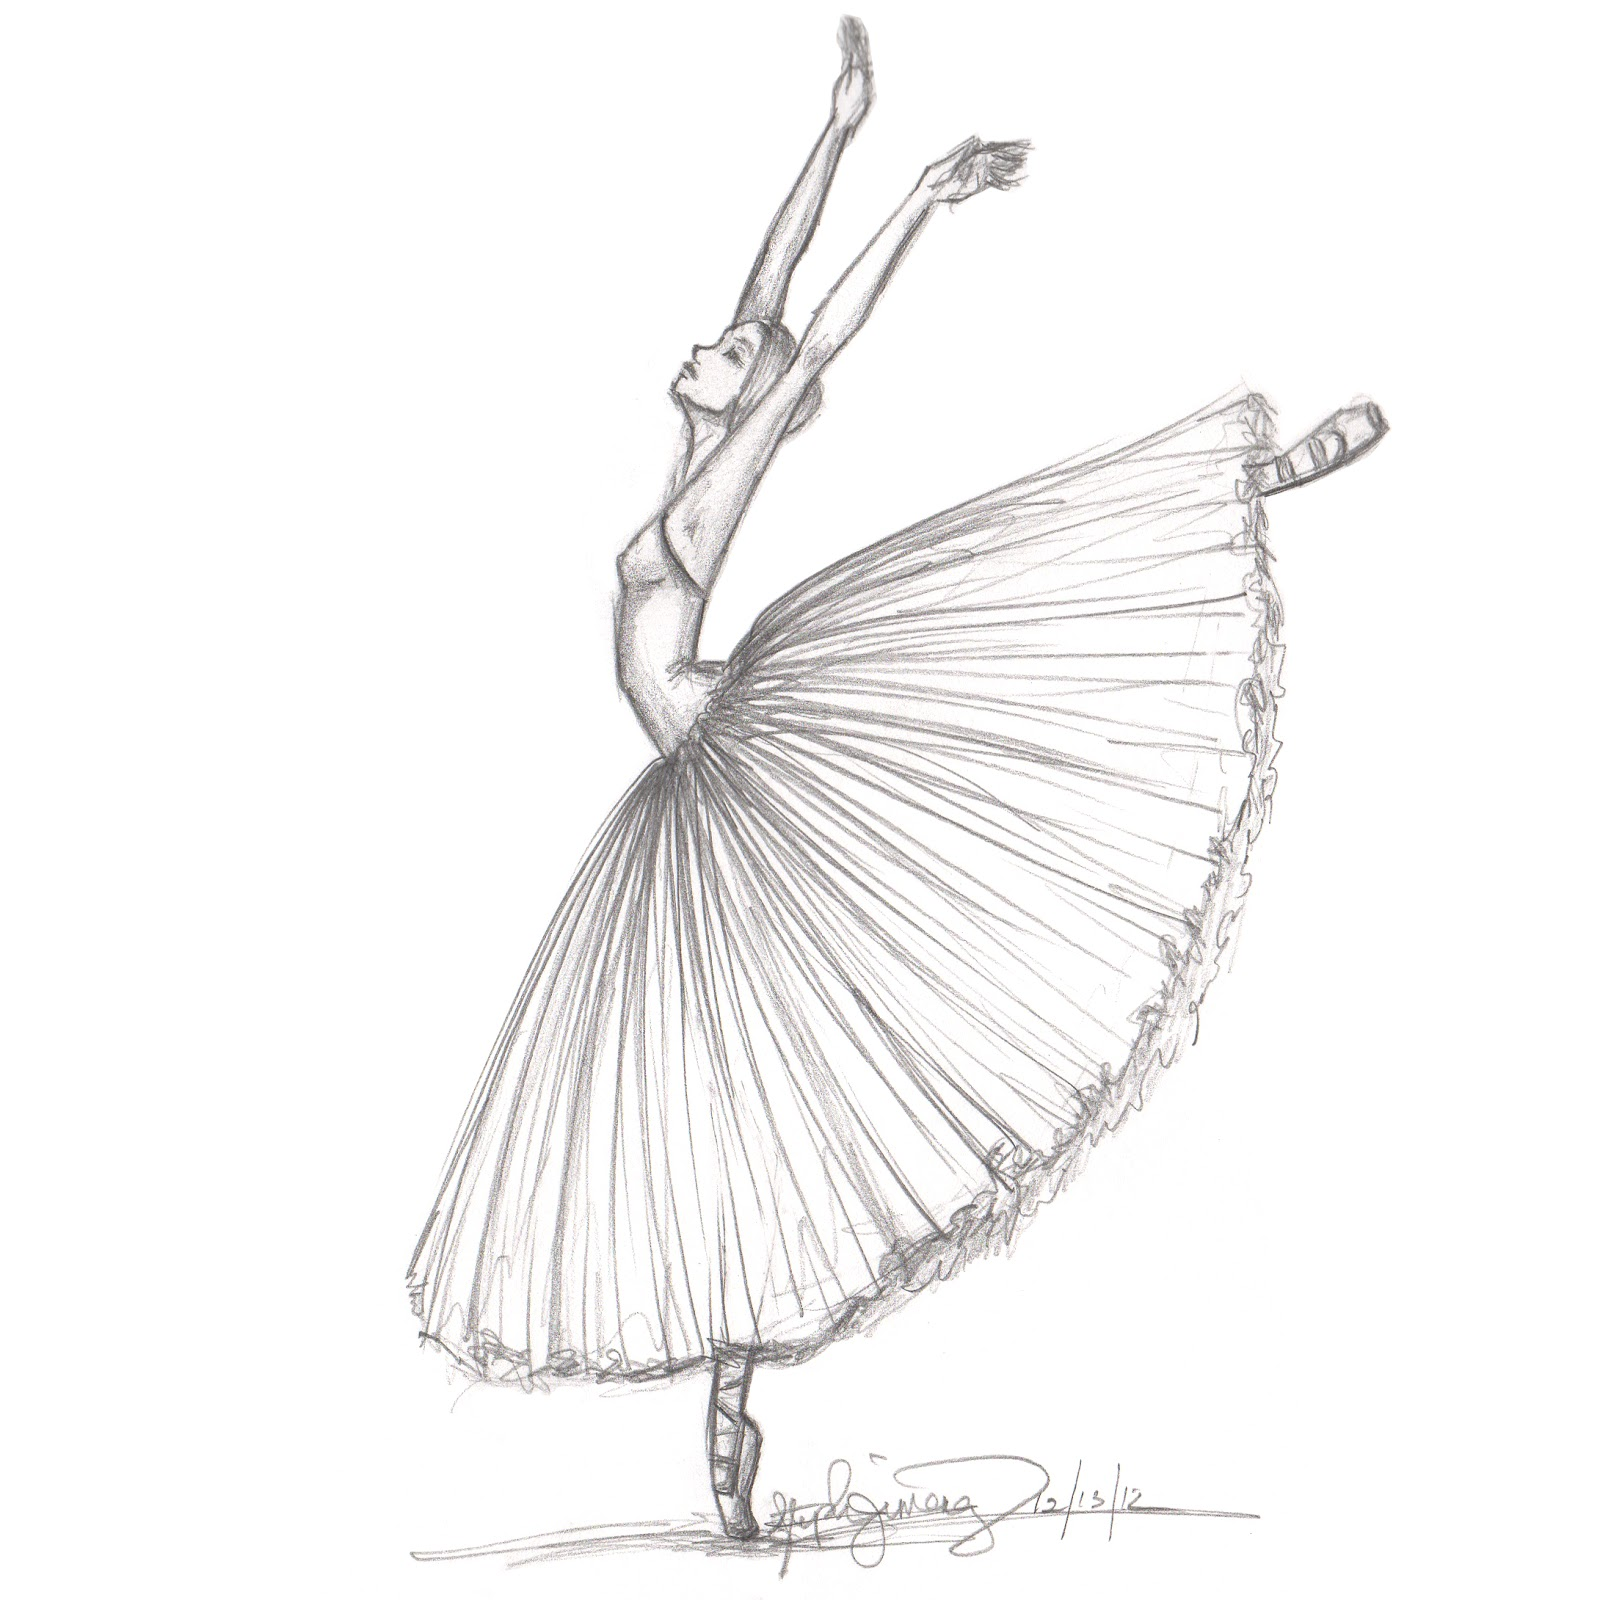 Drawn ballerina fashion illustration By Ballet inspired Fashion by